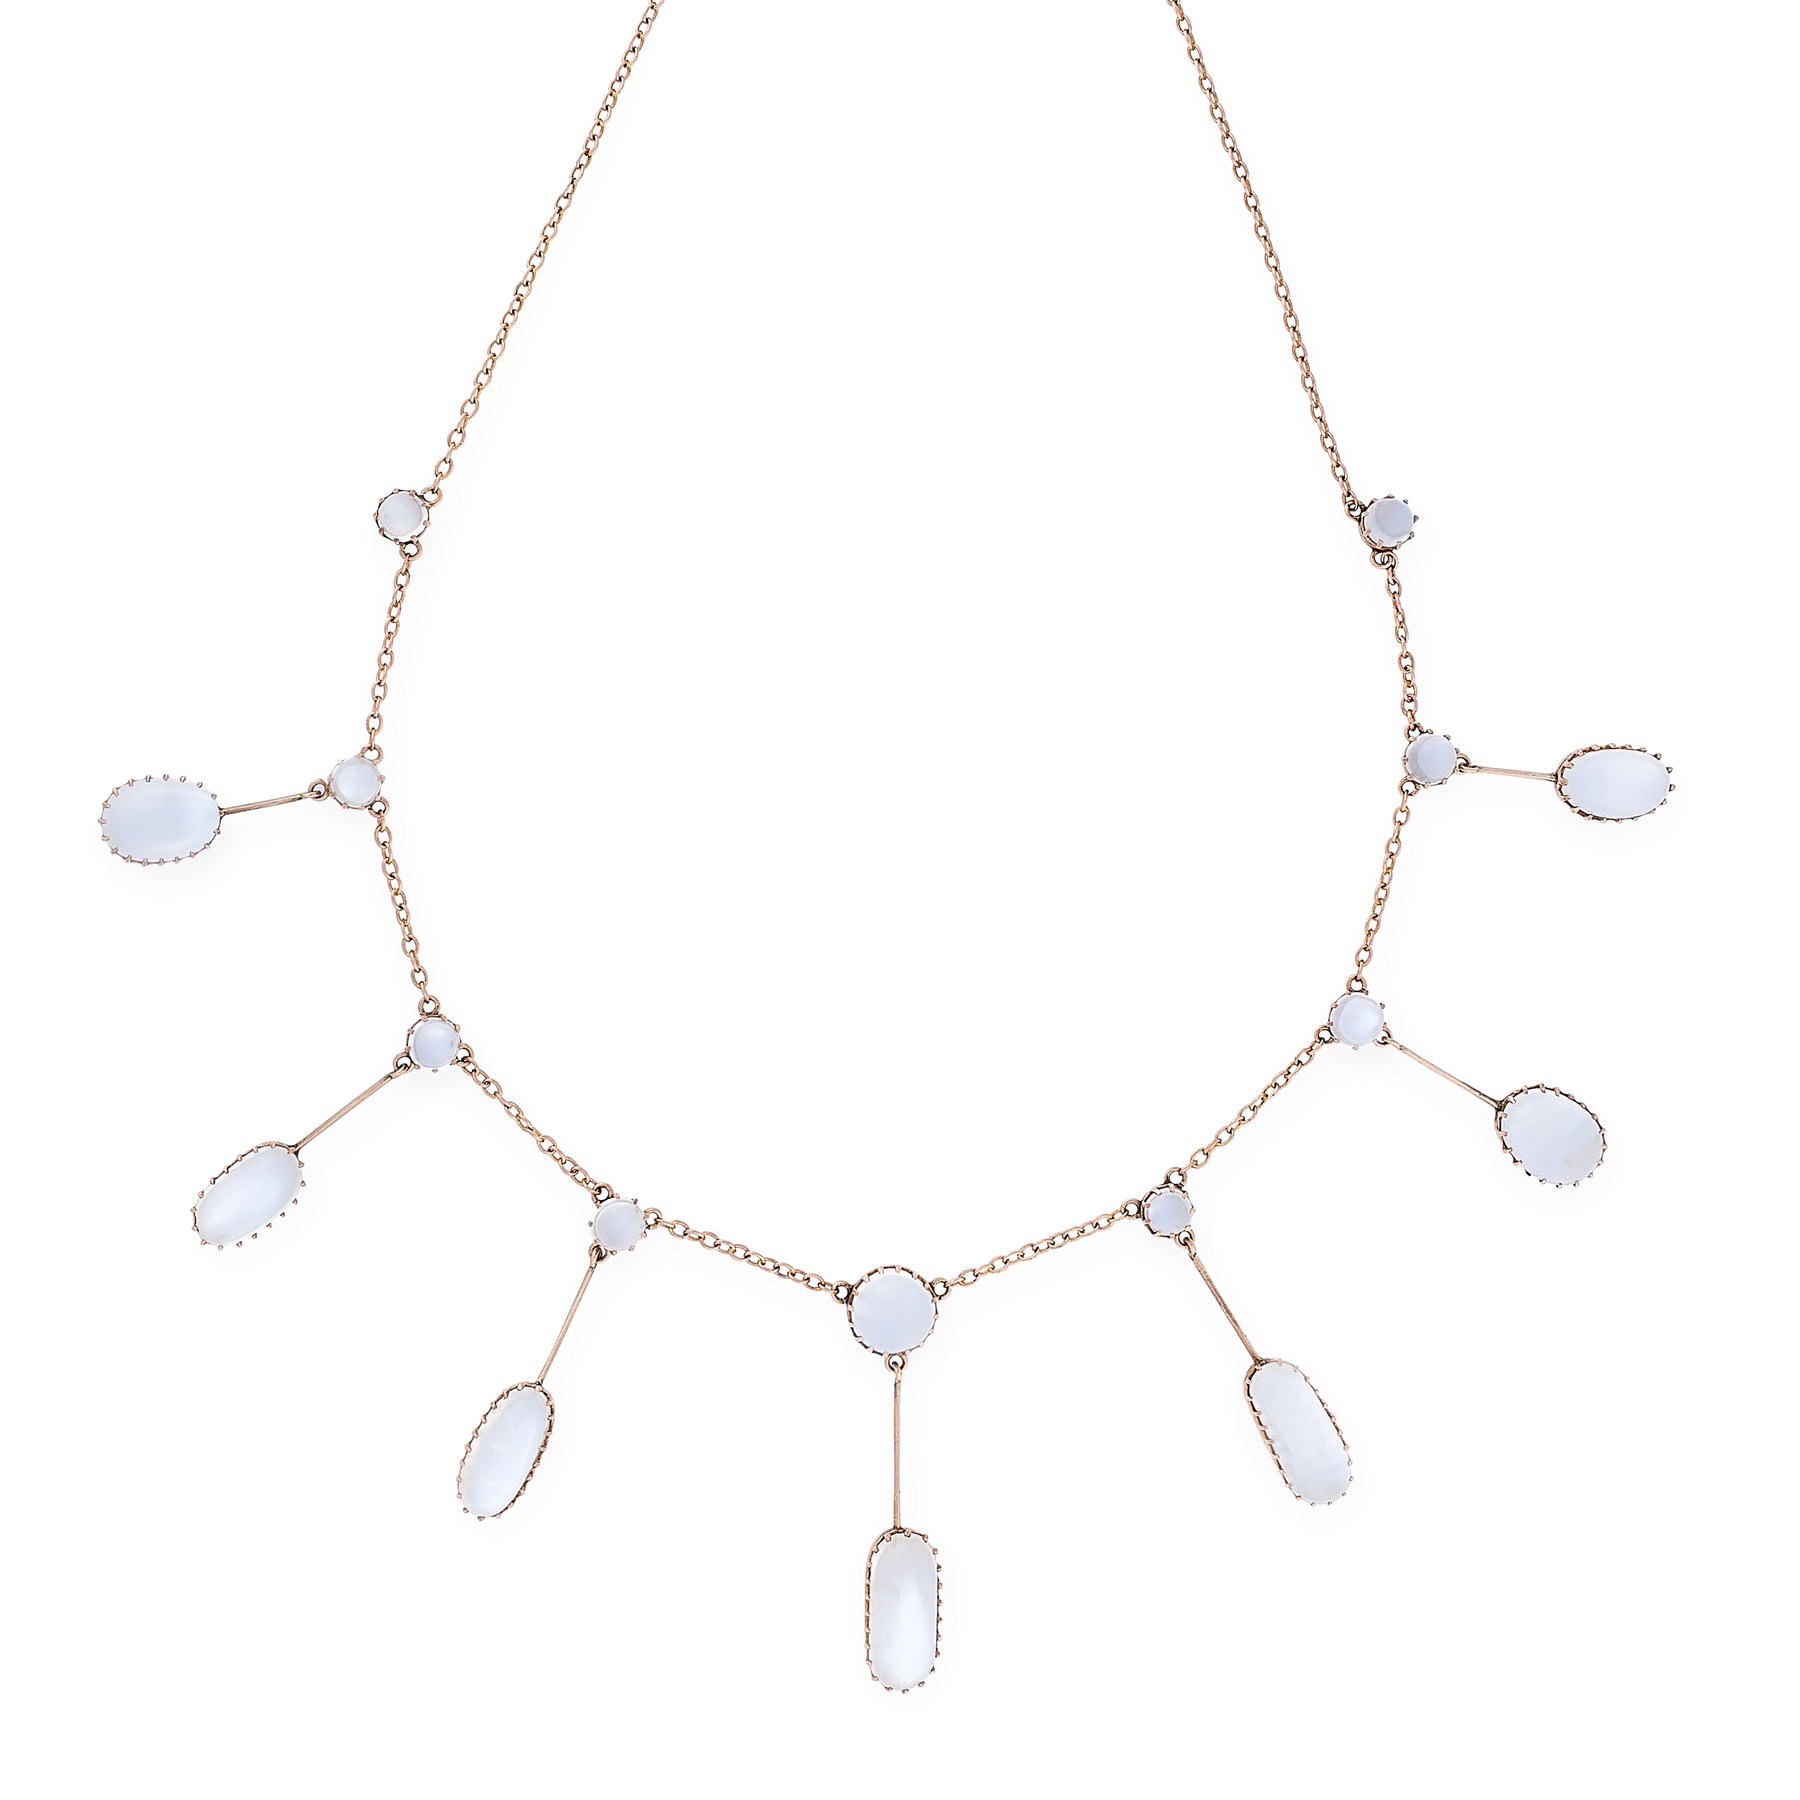 A MOONSTONE FRINGE NECKLACE, EARLY 20TH CENTURY in yellow world, the belcher link chain suspending a